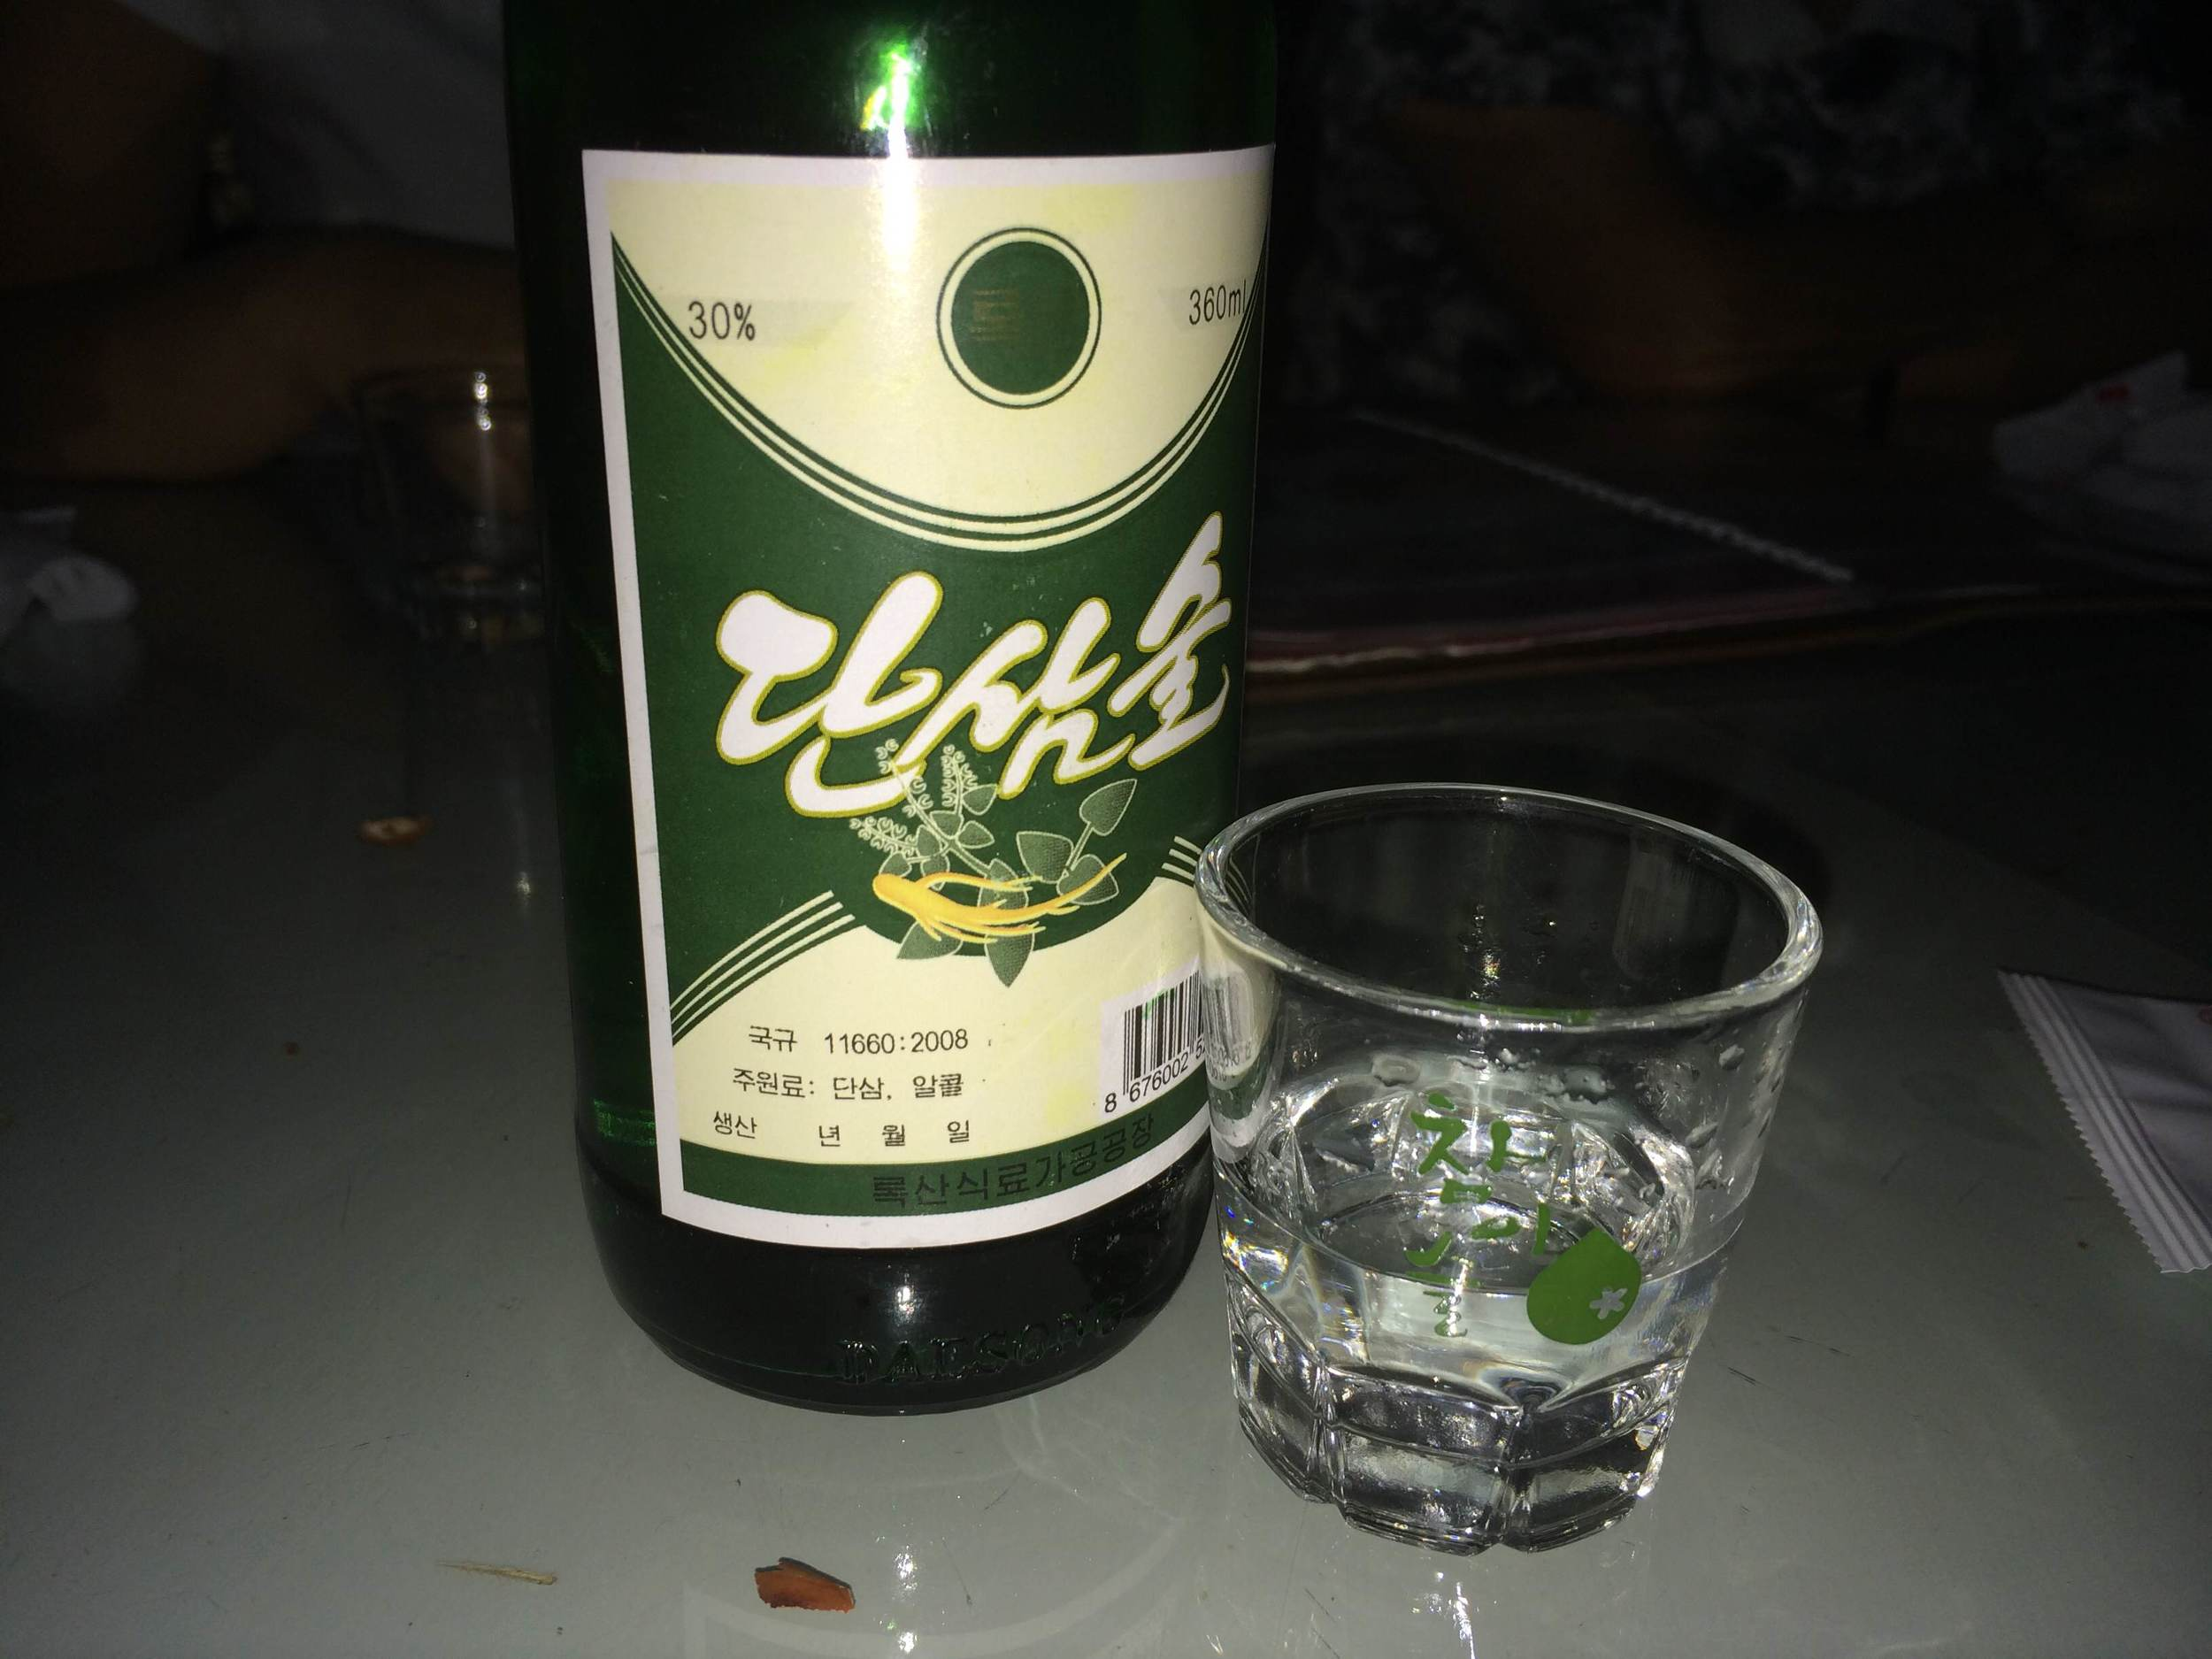 Shot taken by Geoffrey (multiple meanings intended). Stopped for dinner at the highway back to Hanoi. North Koreans pulled out NK soju, Vietnamese waitress pulls out South Korea soju cups. Sojunification!